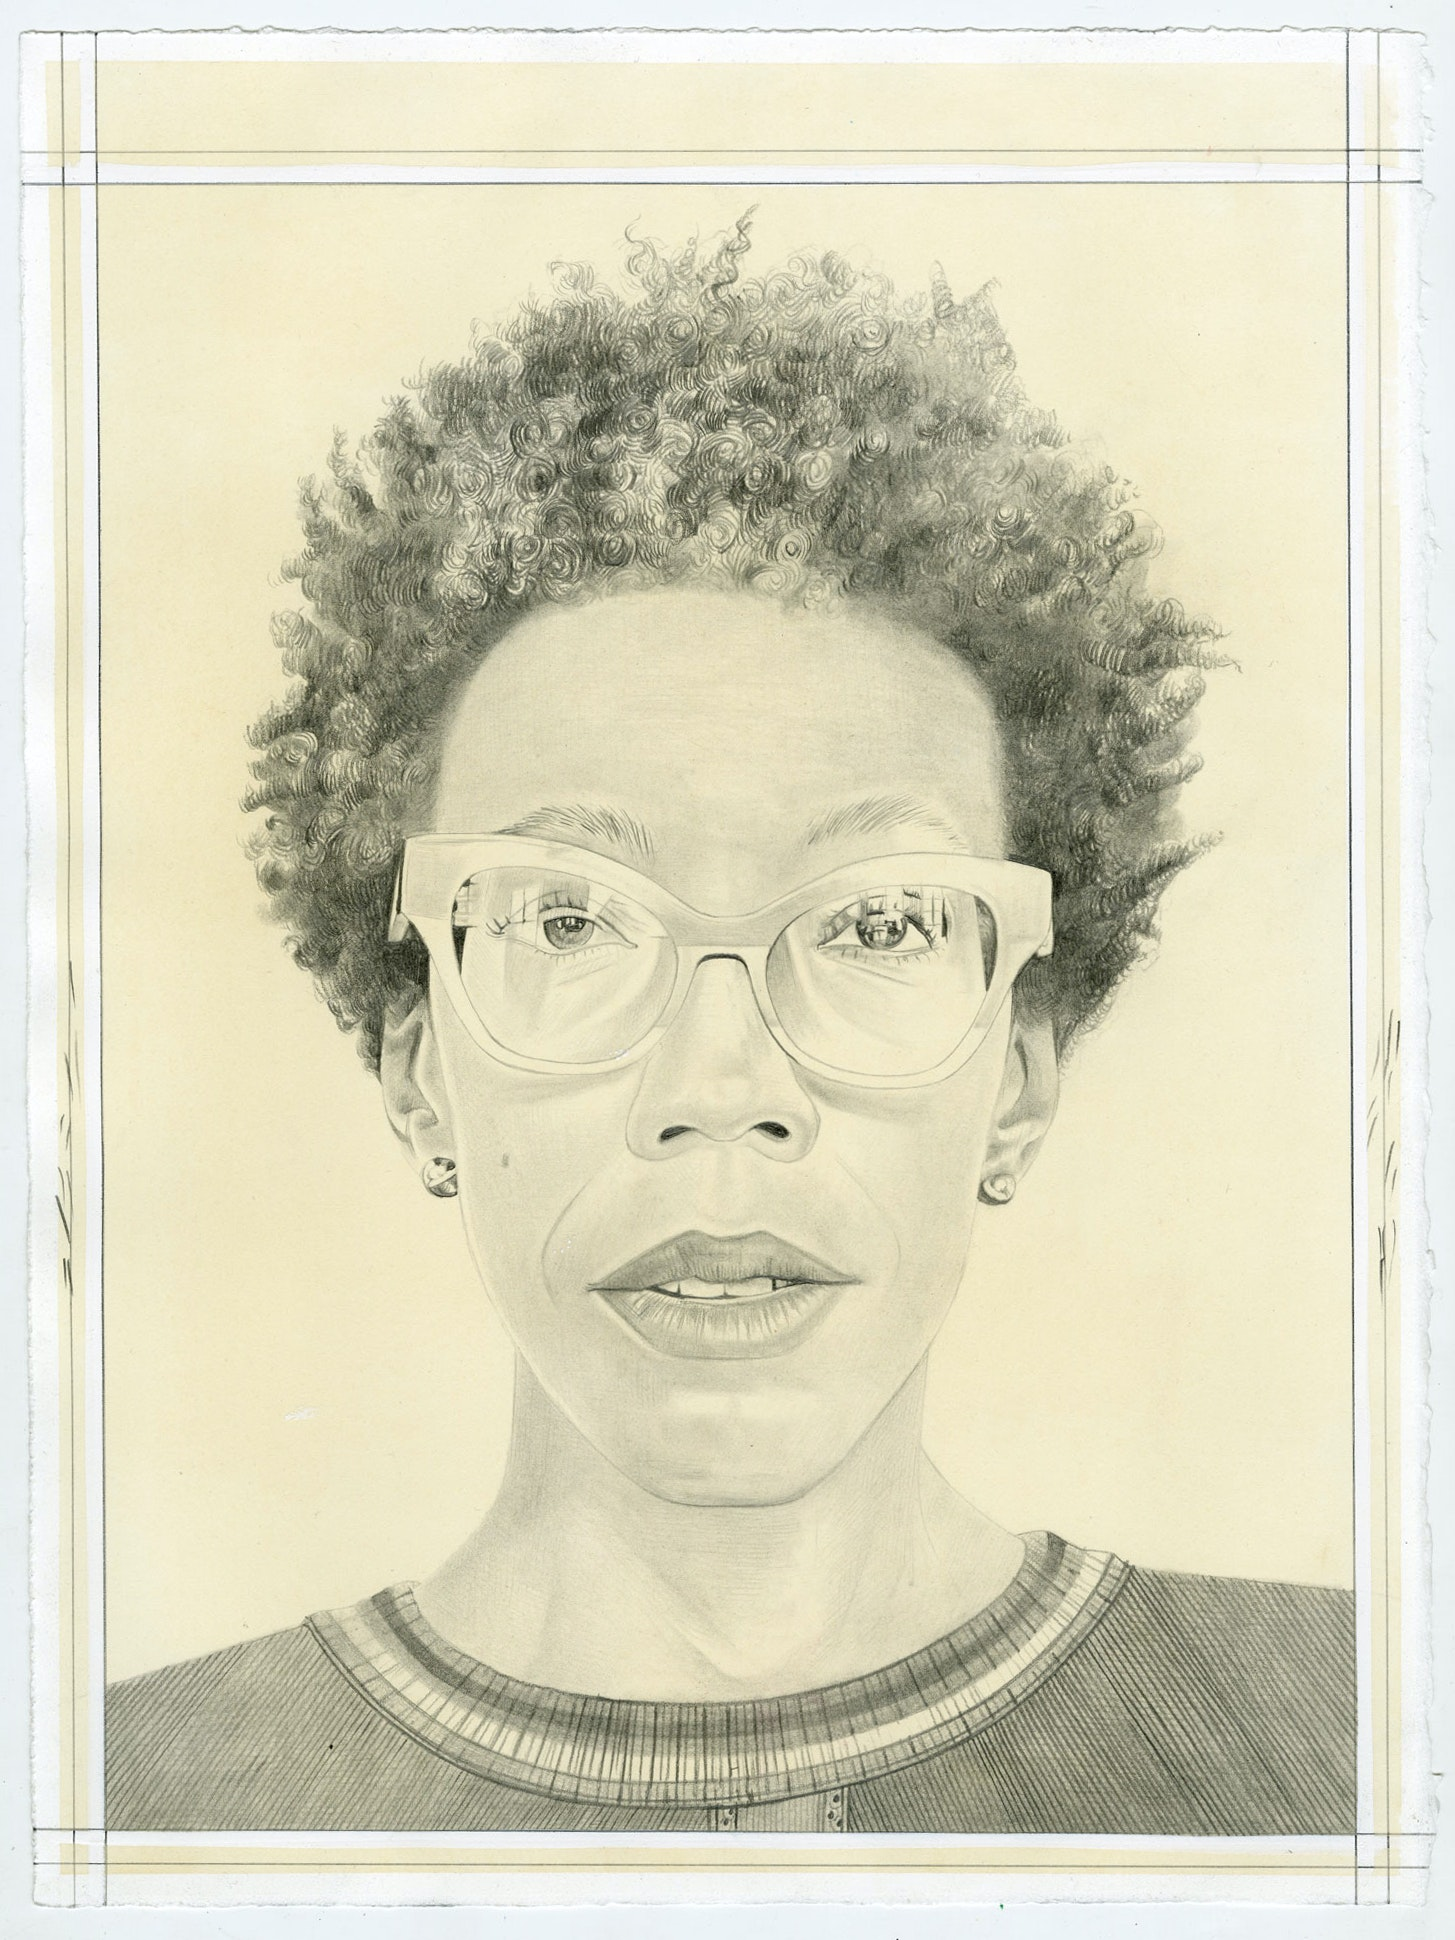 Portrait of Amy Sherald, pencil on paper by Phong Bui. Based on a photograph by Jordan Geiger.